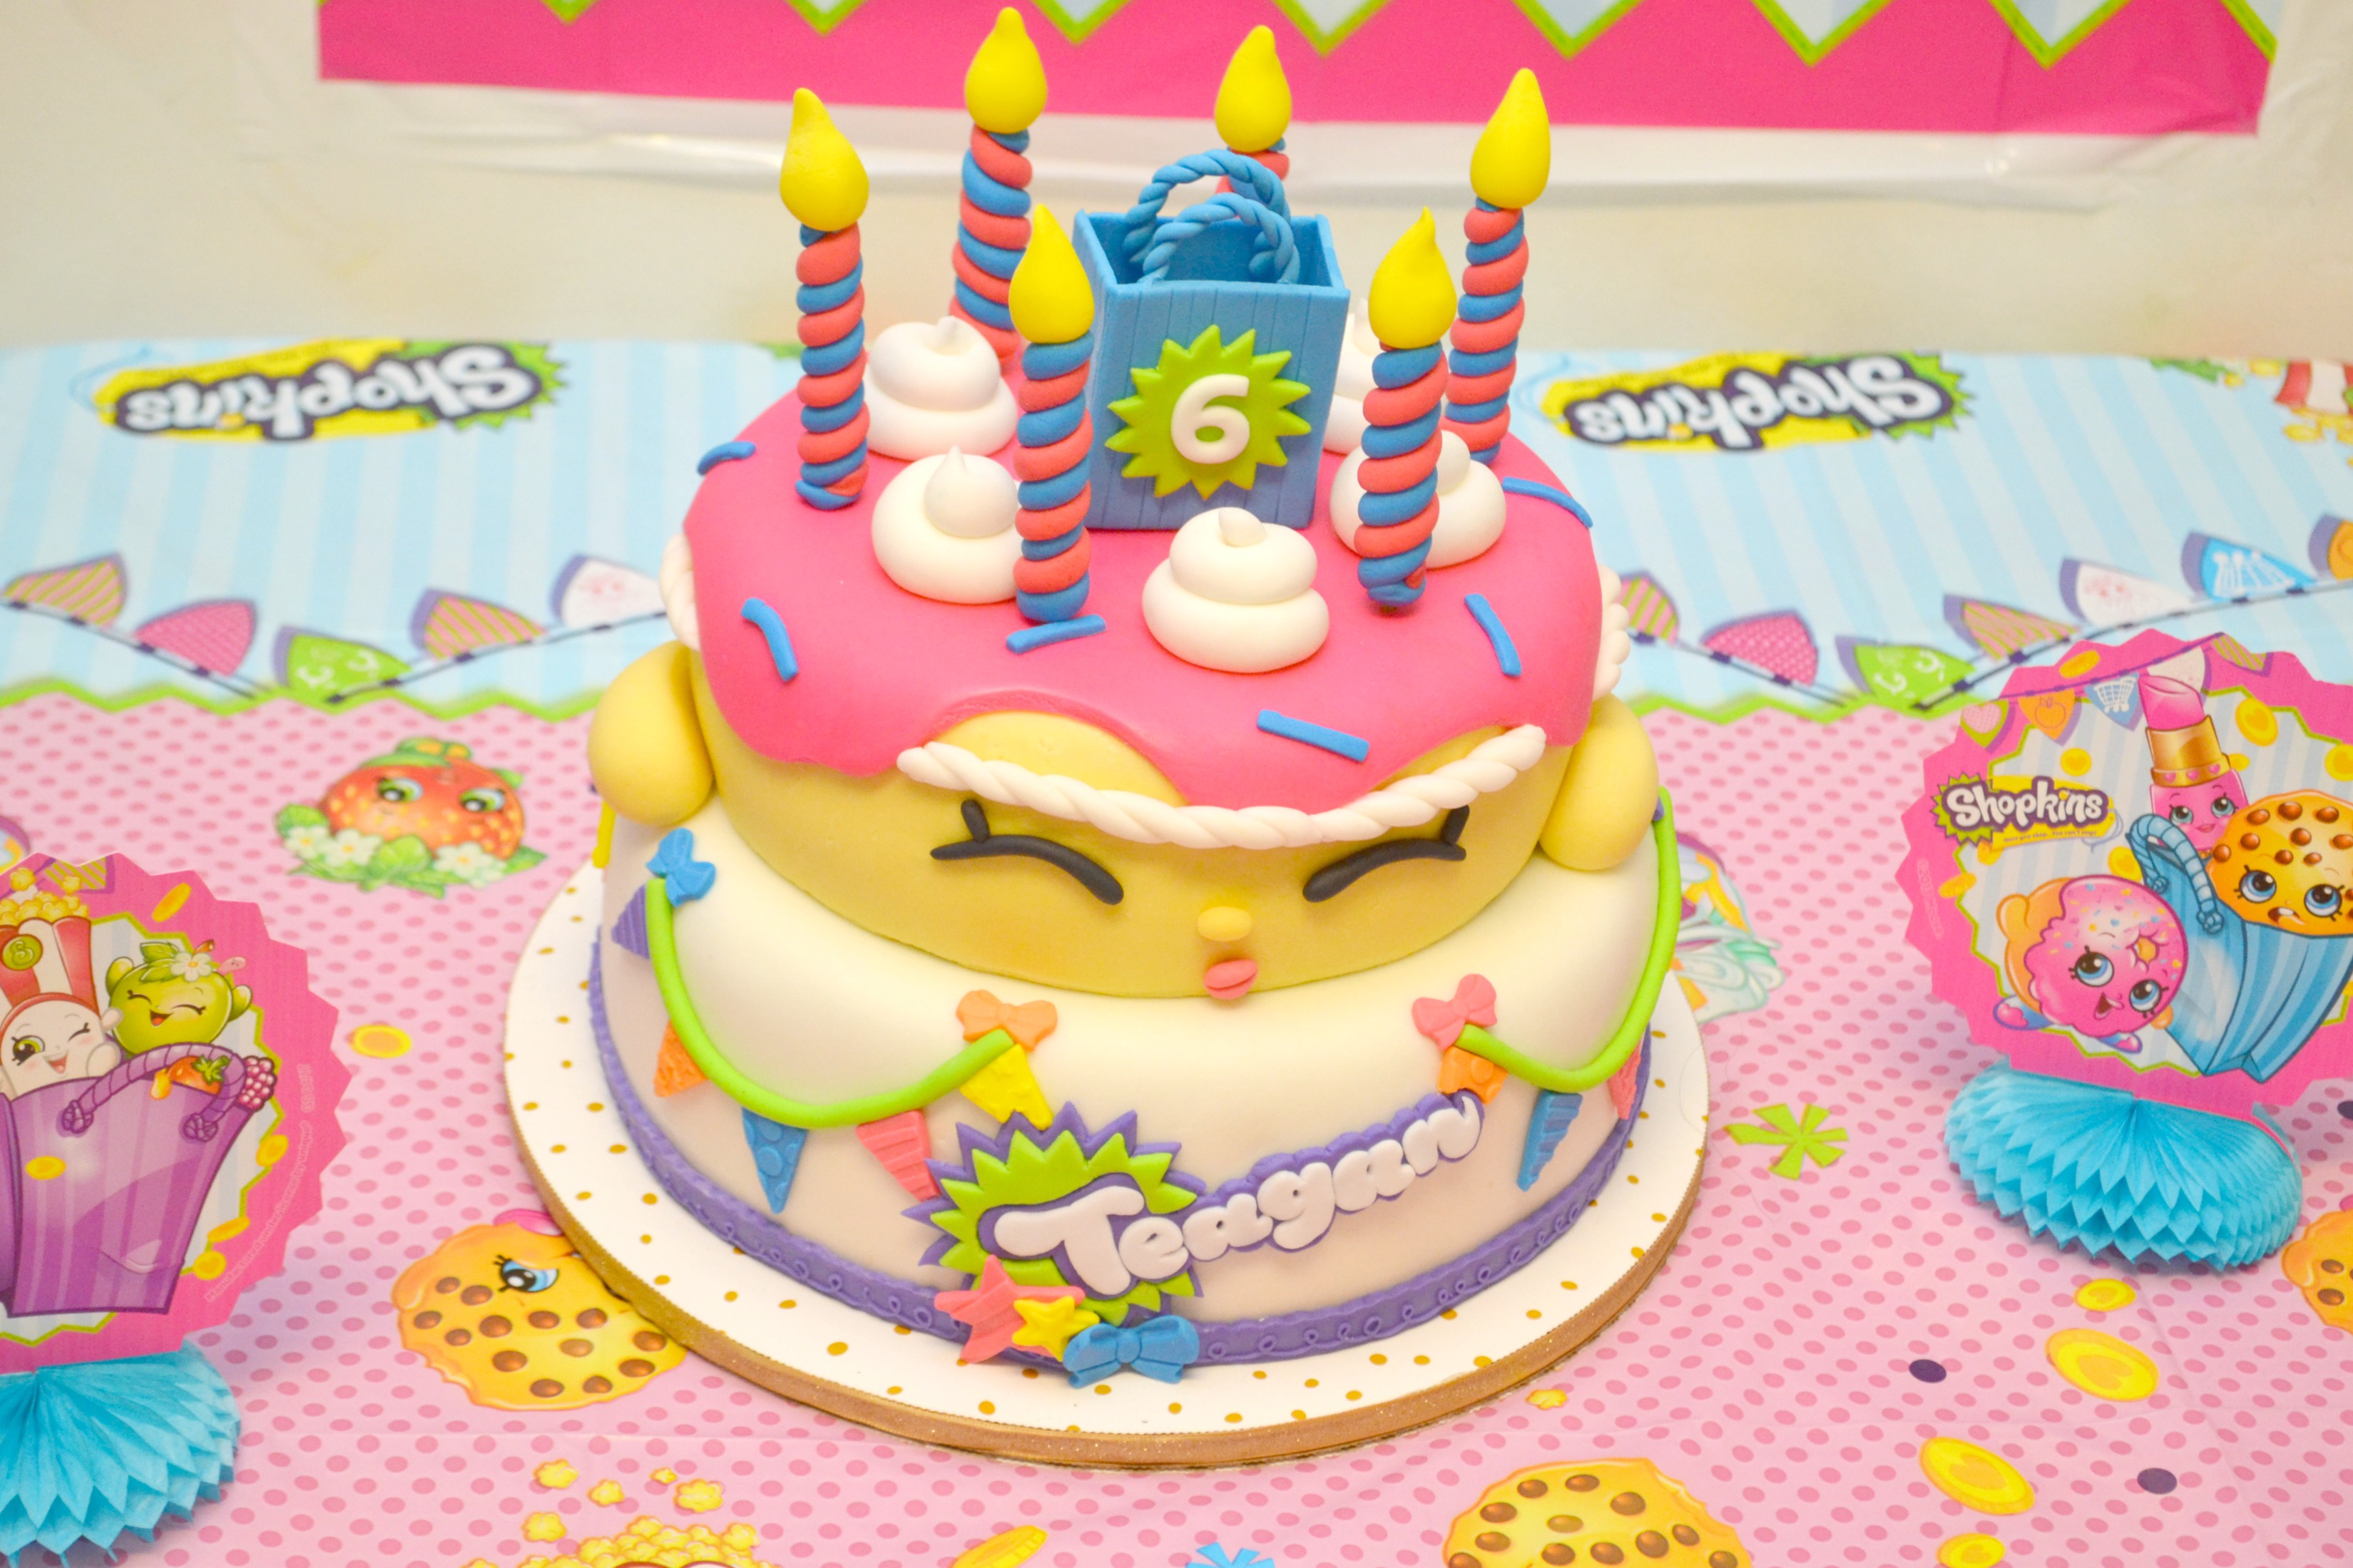 Planning a shopkins birthday party, shopkins party, shopkins birthday party, shopkins party food, shopkins party ideas, shopkins party decorations, shopkins birthday party decorations, how to throw a shopkins birthday cake, shopkins cake, shopkins party, shopkins birthday party printables, throwing a Shopkins birthday party